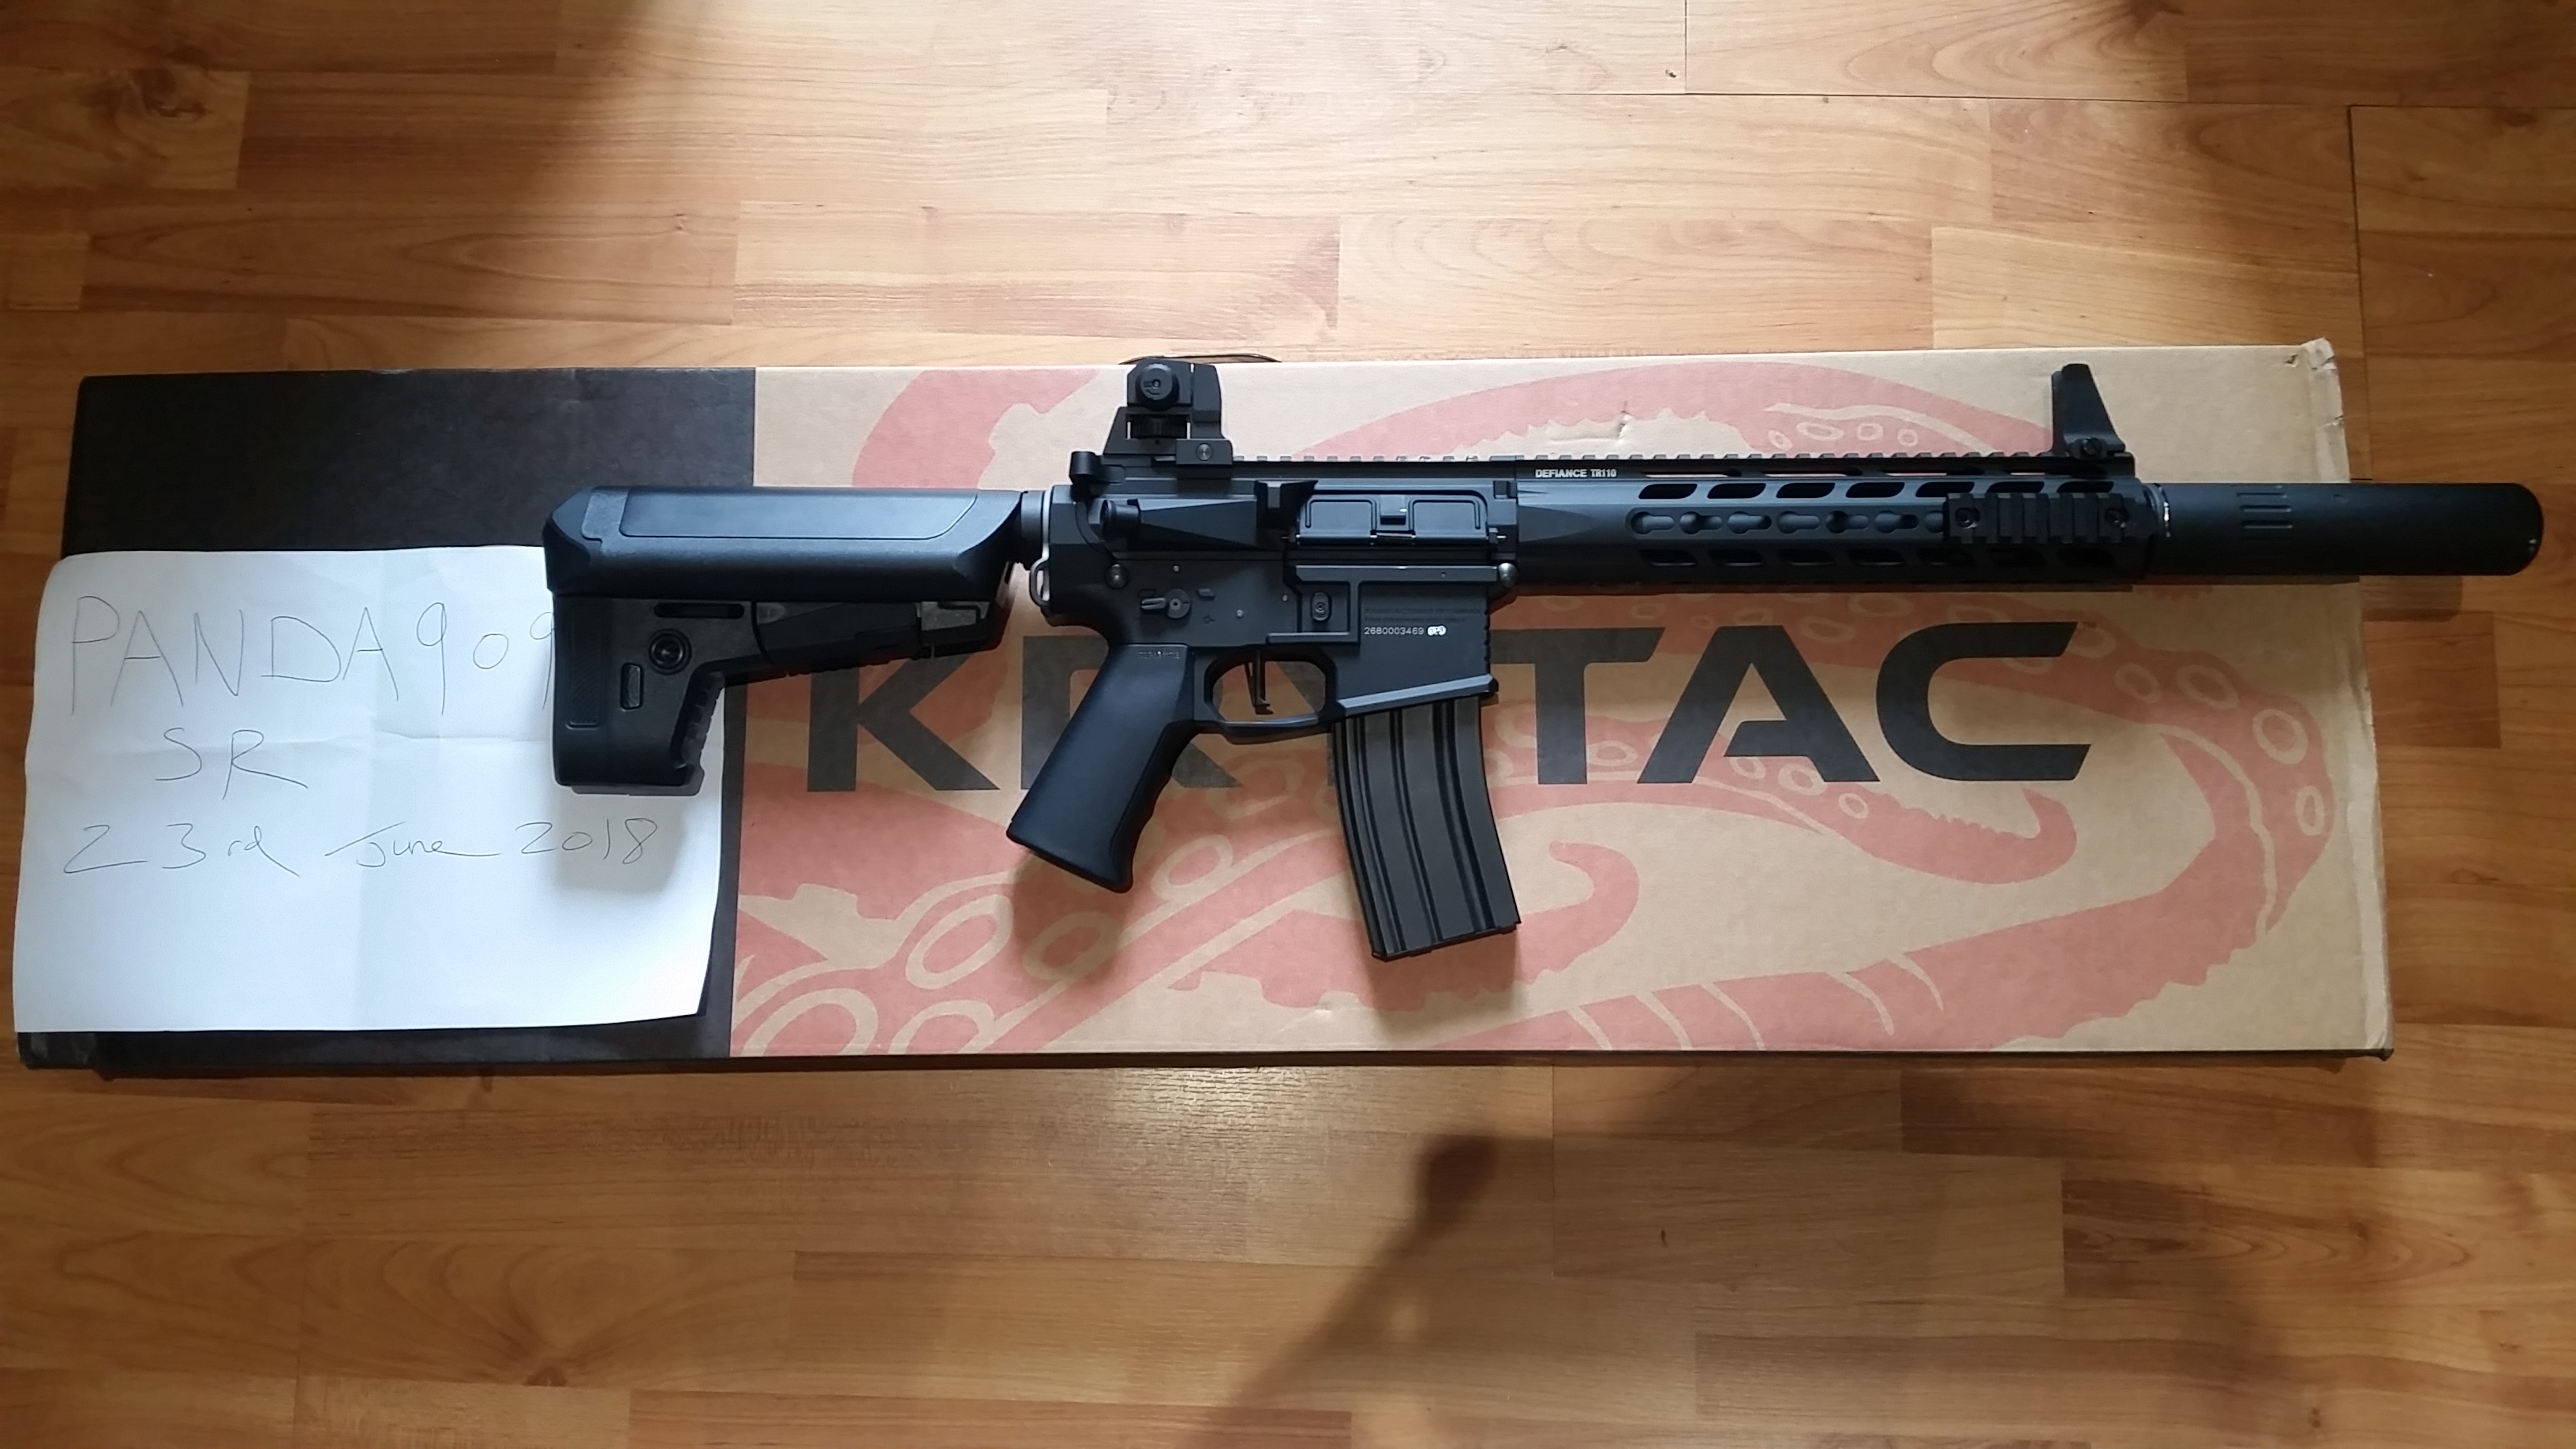 Krytac Trident MkII CRB – Blac (DELETED) - Buy & Sell Used Airsoft  Equipment - AirsoftHub